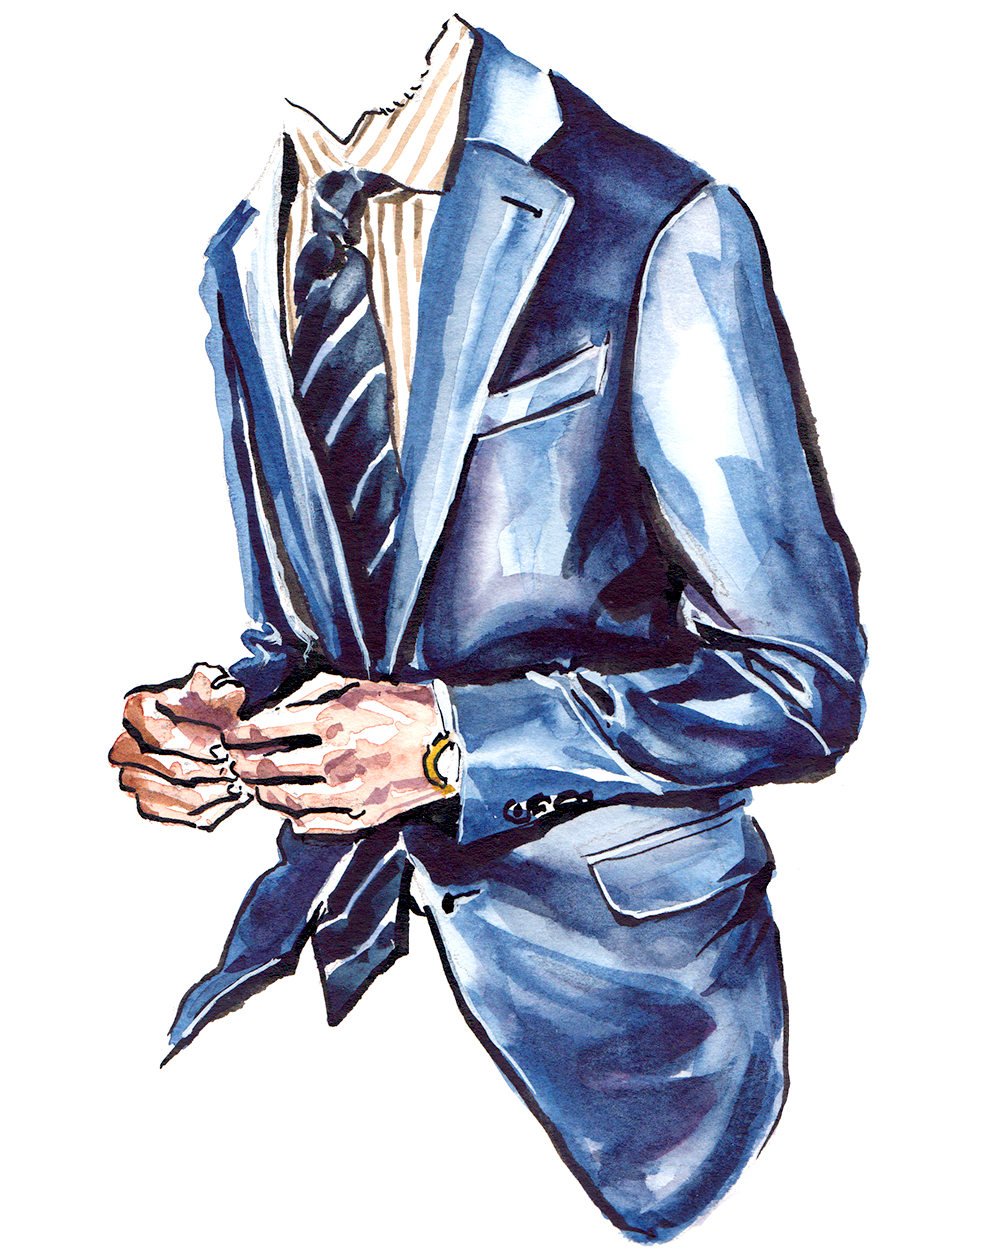 Zegna Suit Menswear Illustration